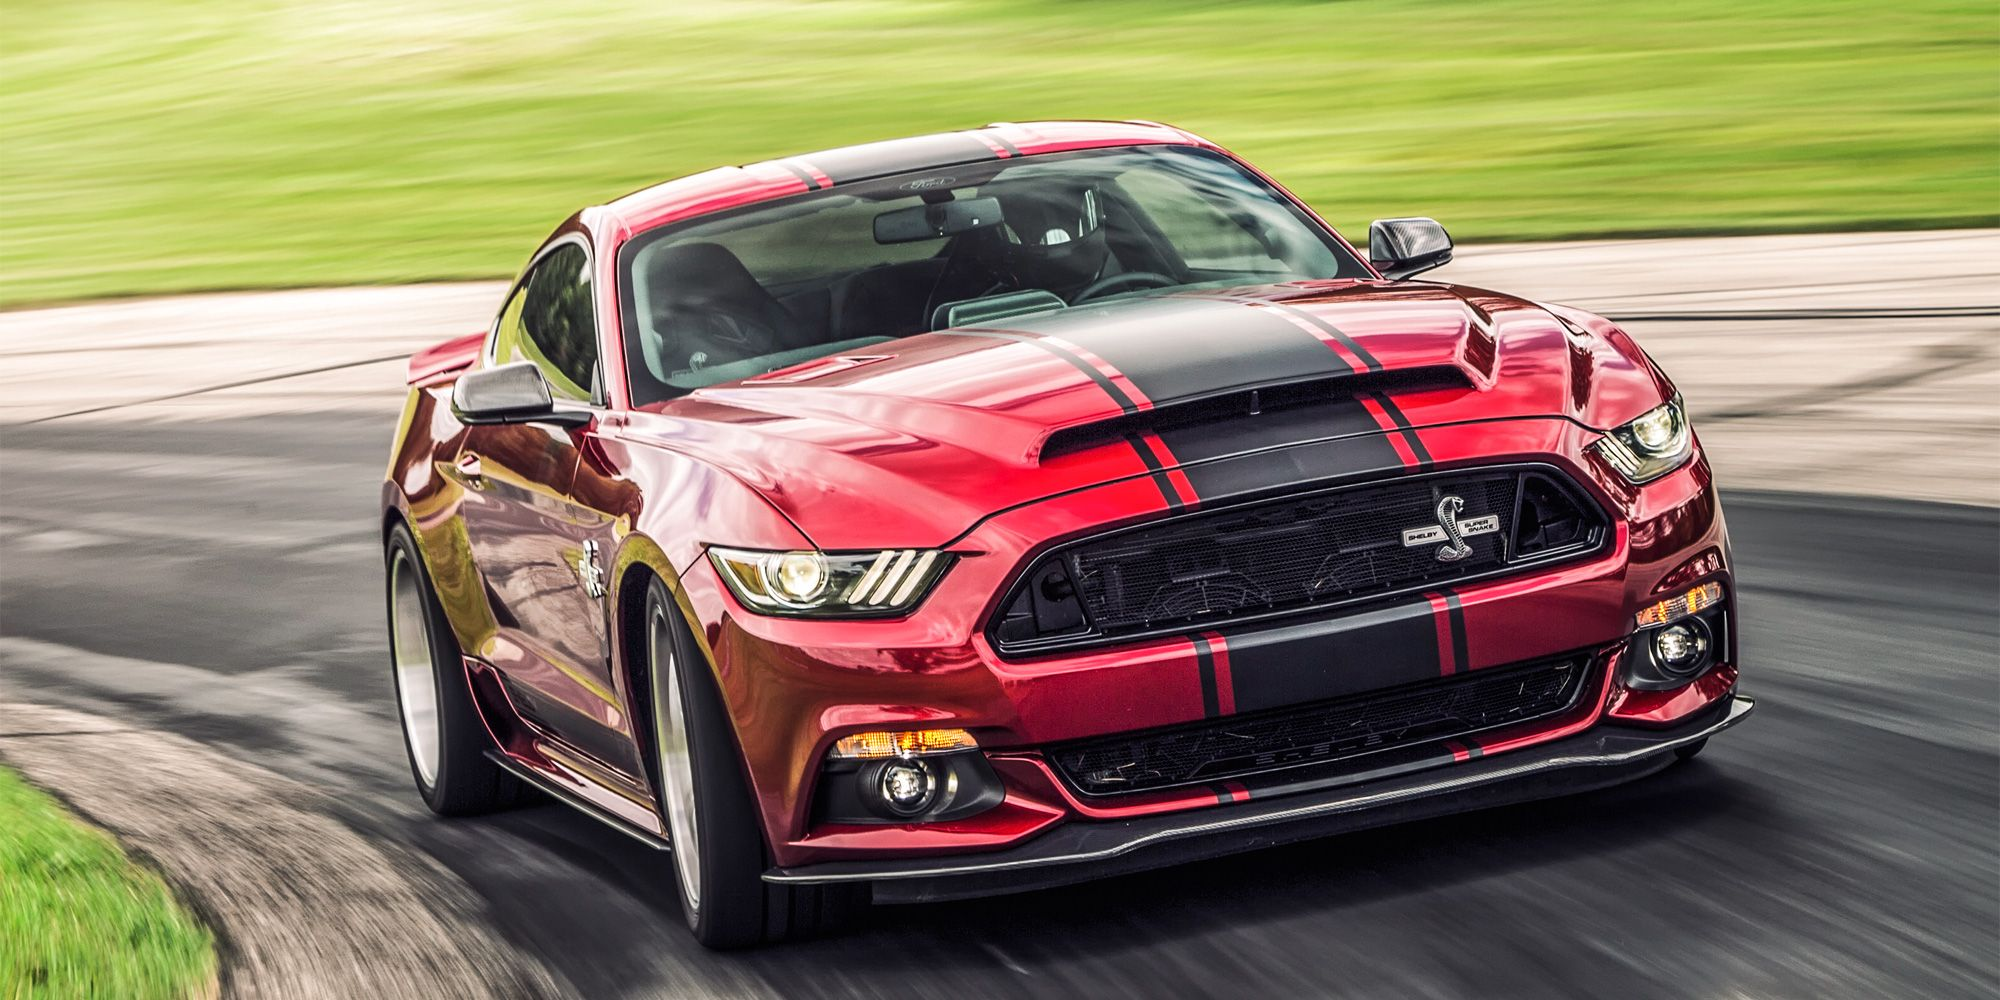 The 2017 Shelby Super Snake Is An Outrageous Numbers That Doesn T Add Up